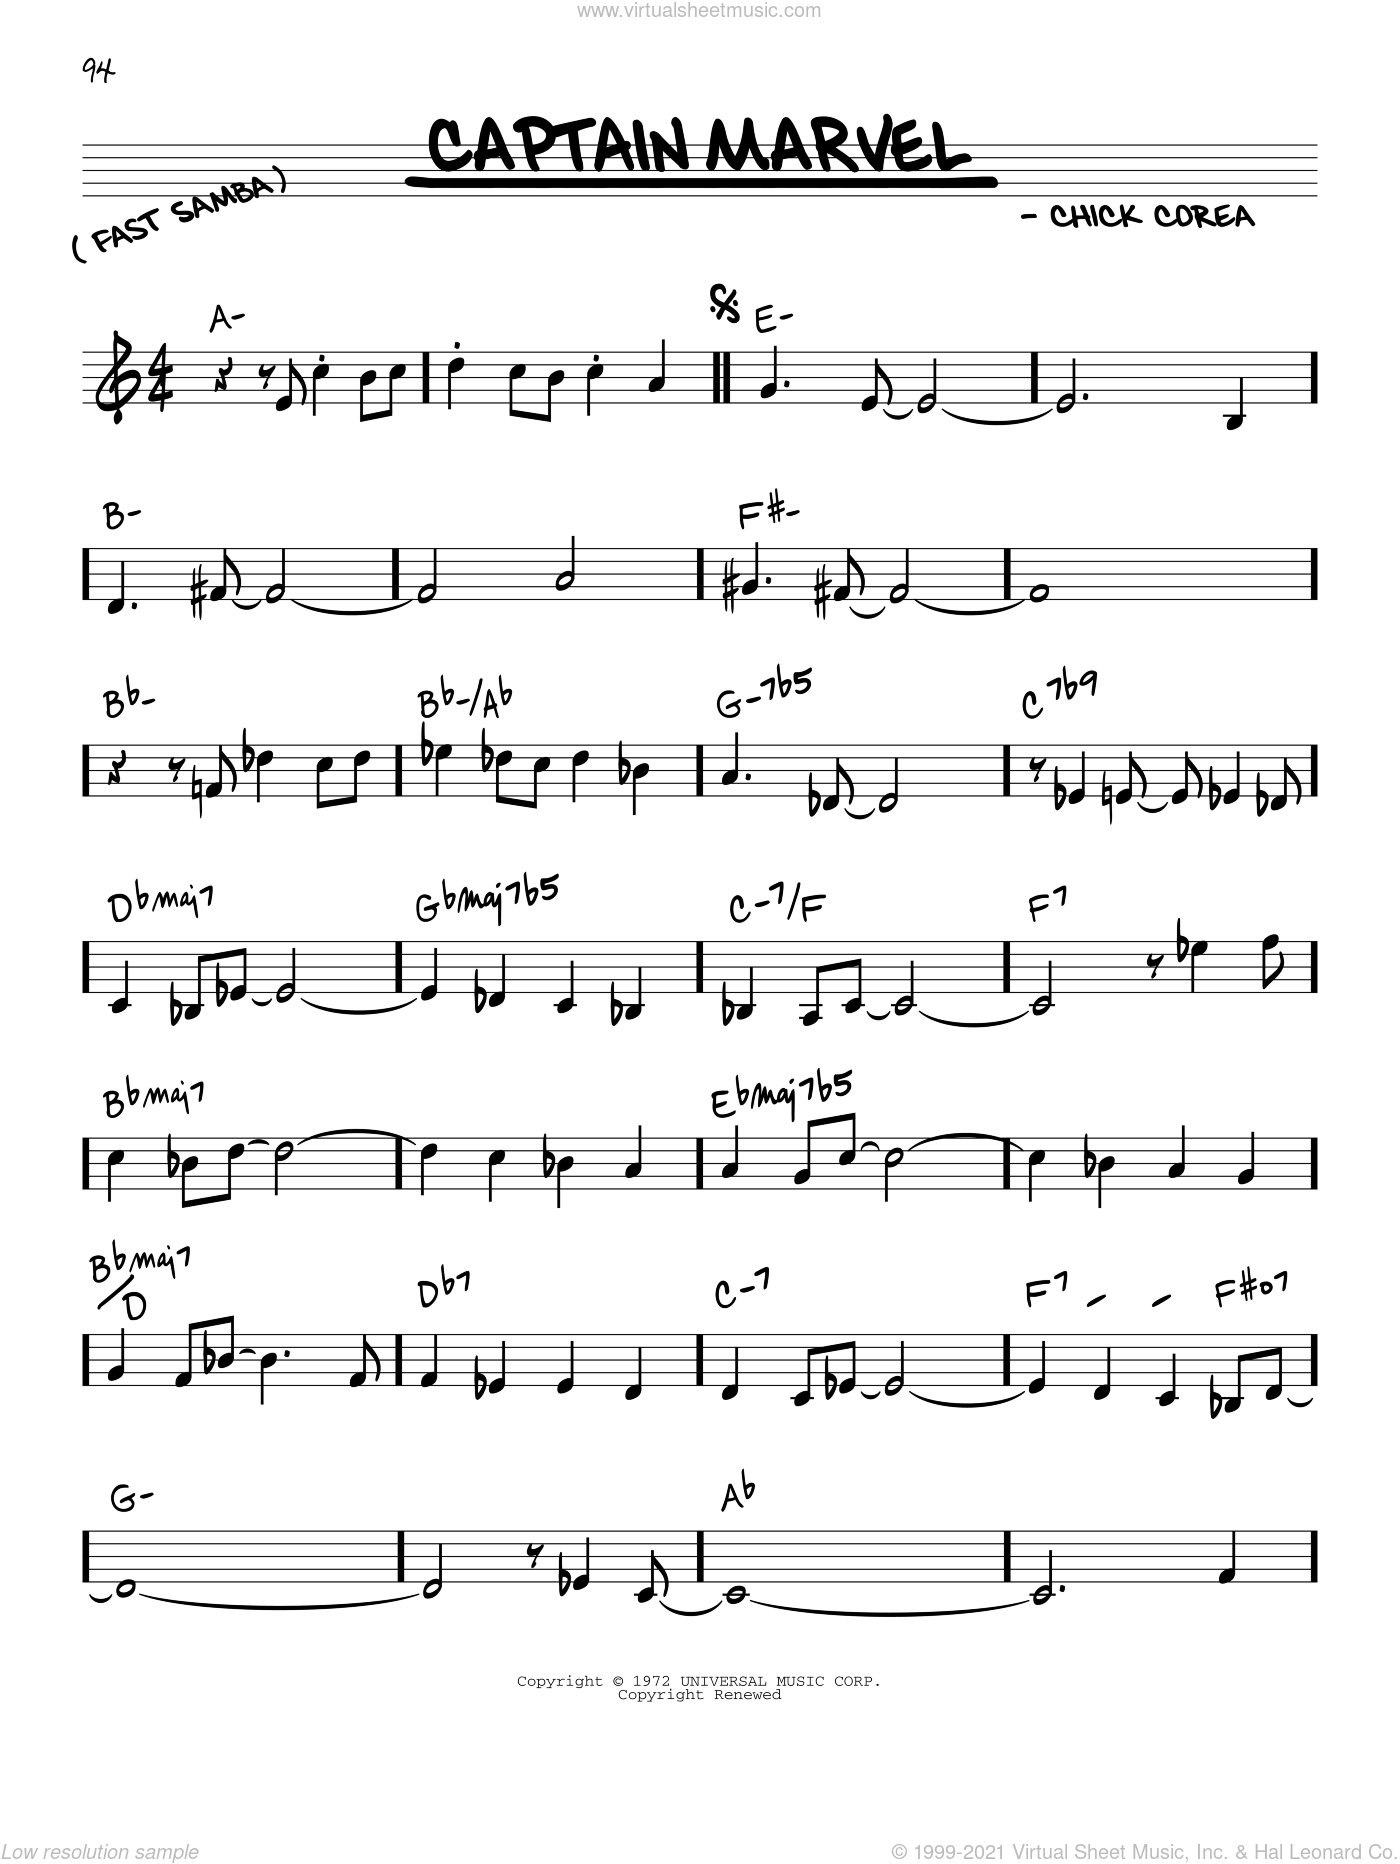 Captain Marvel sheet music for voice and other instruments (in C) by Chick Corea, intermediate skill level